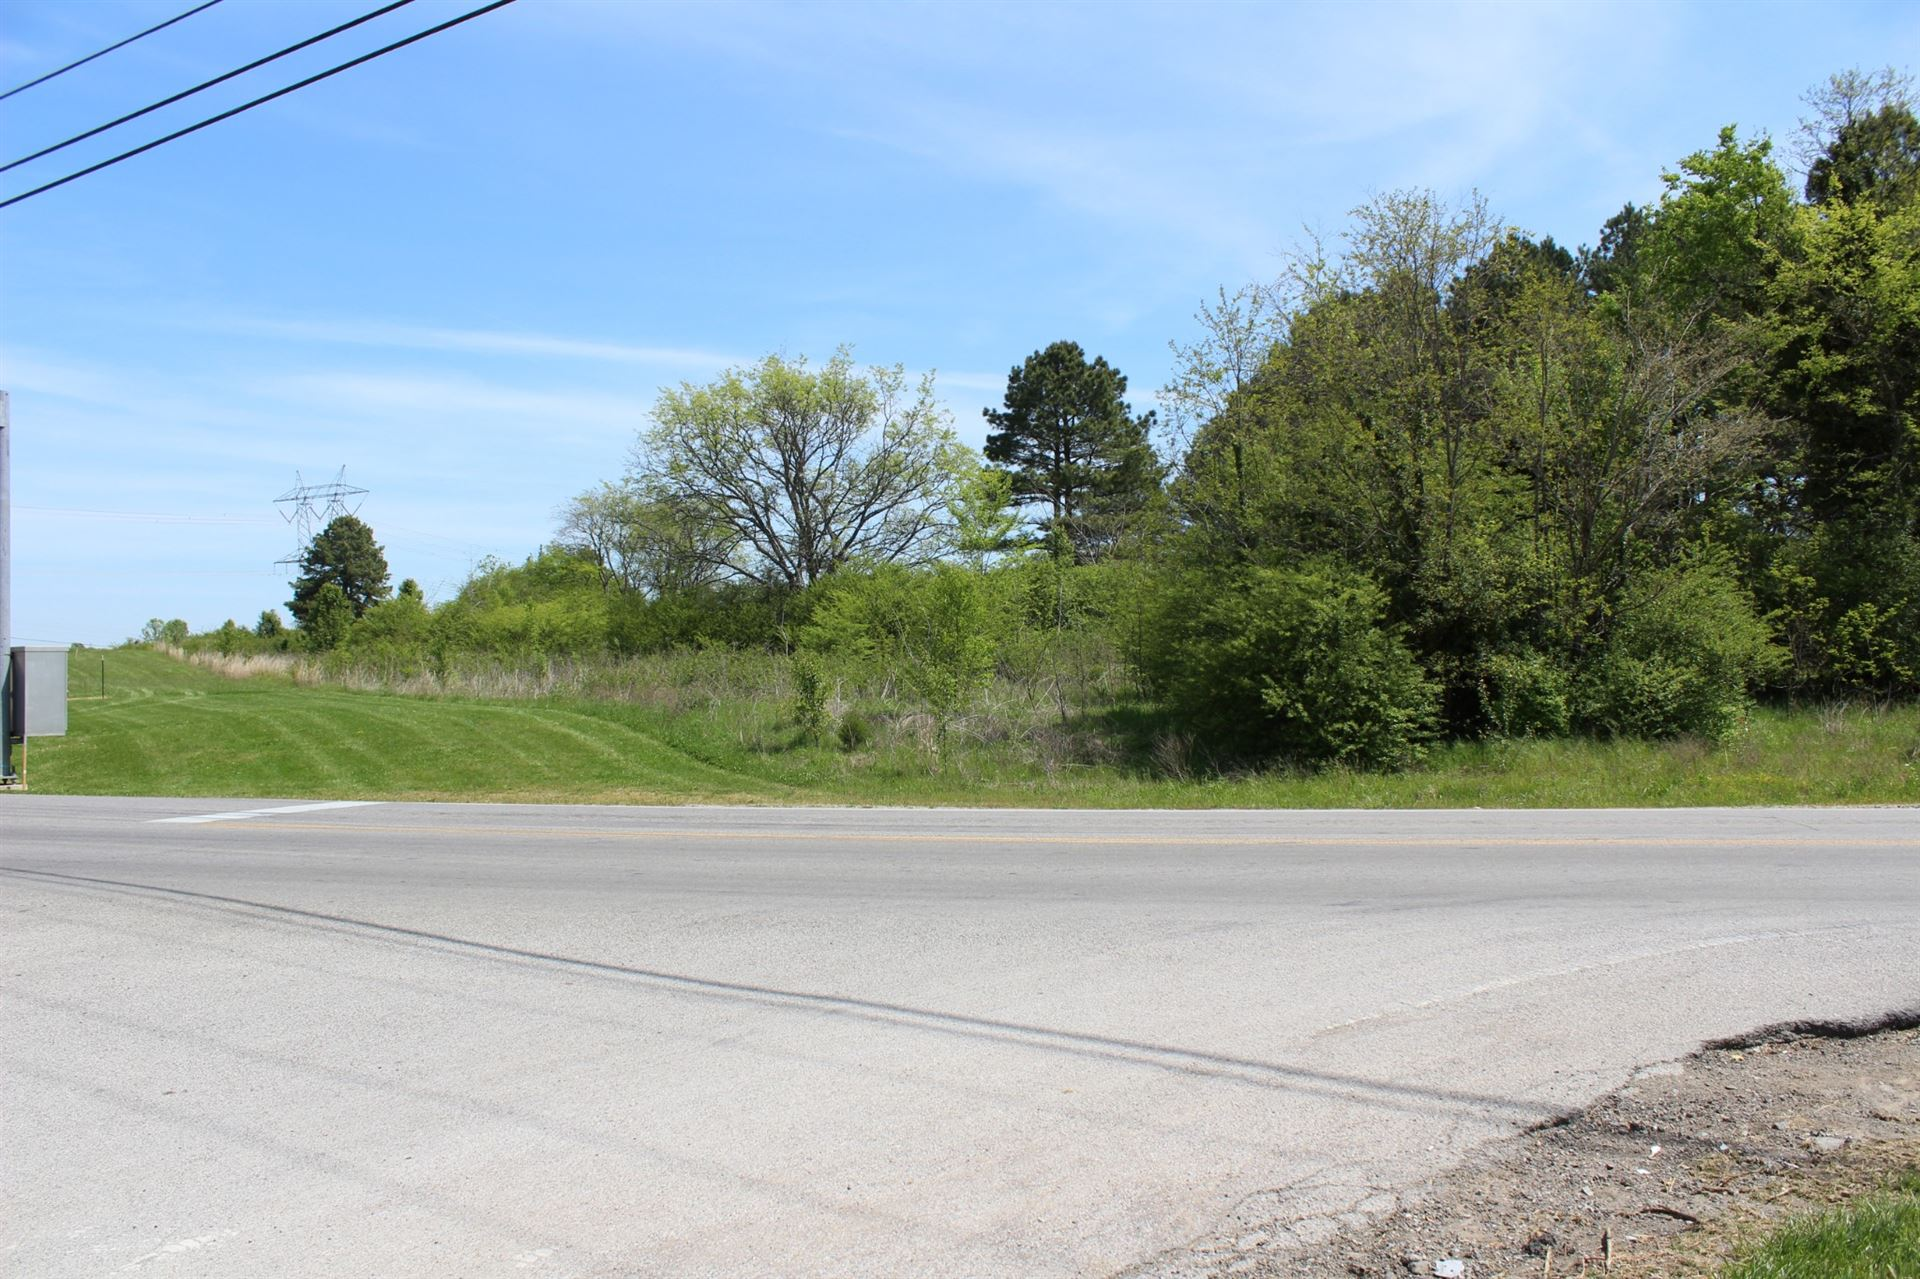 Photo of 0 Lincoln Rd, Spring Hill, TN 37174 (MLS # 2248180)